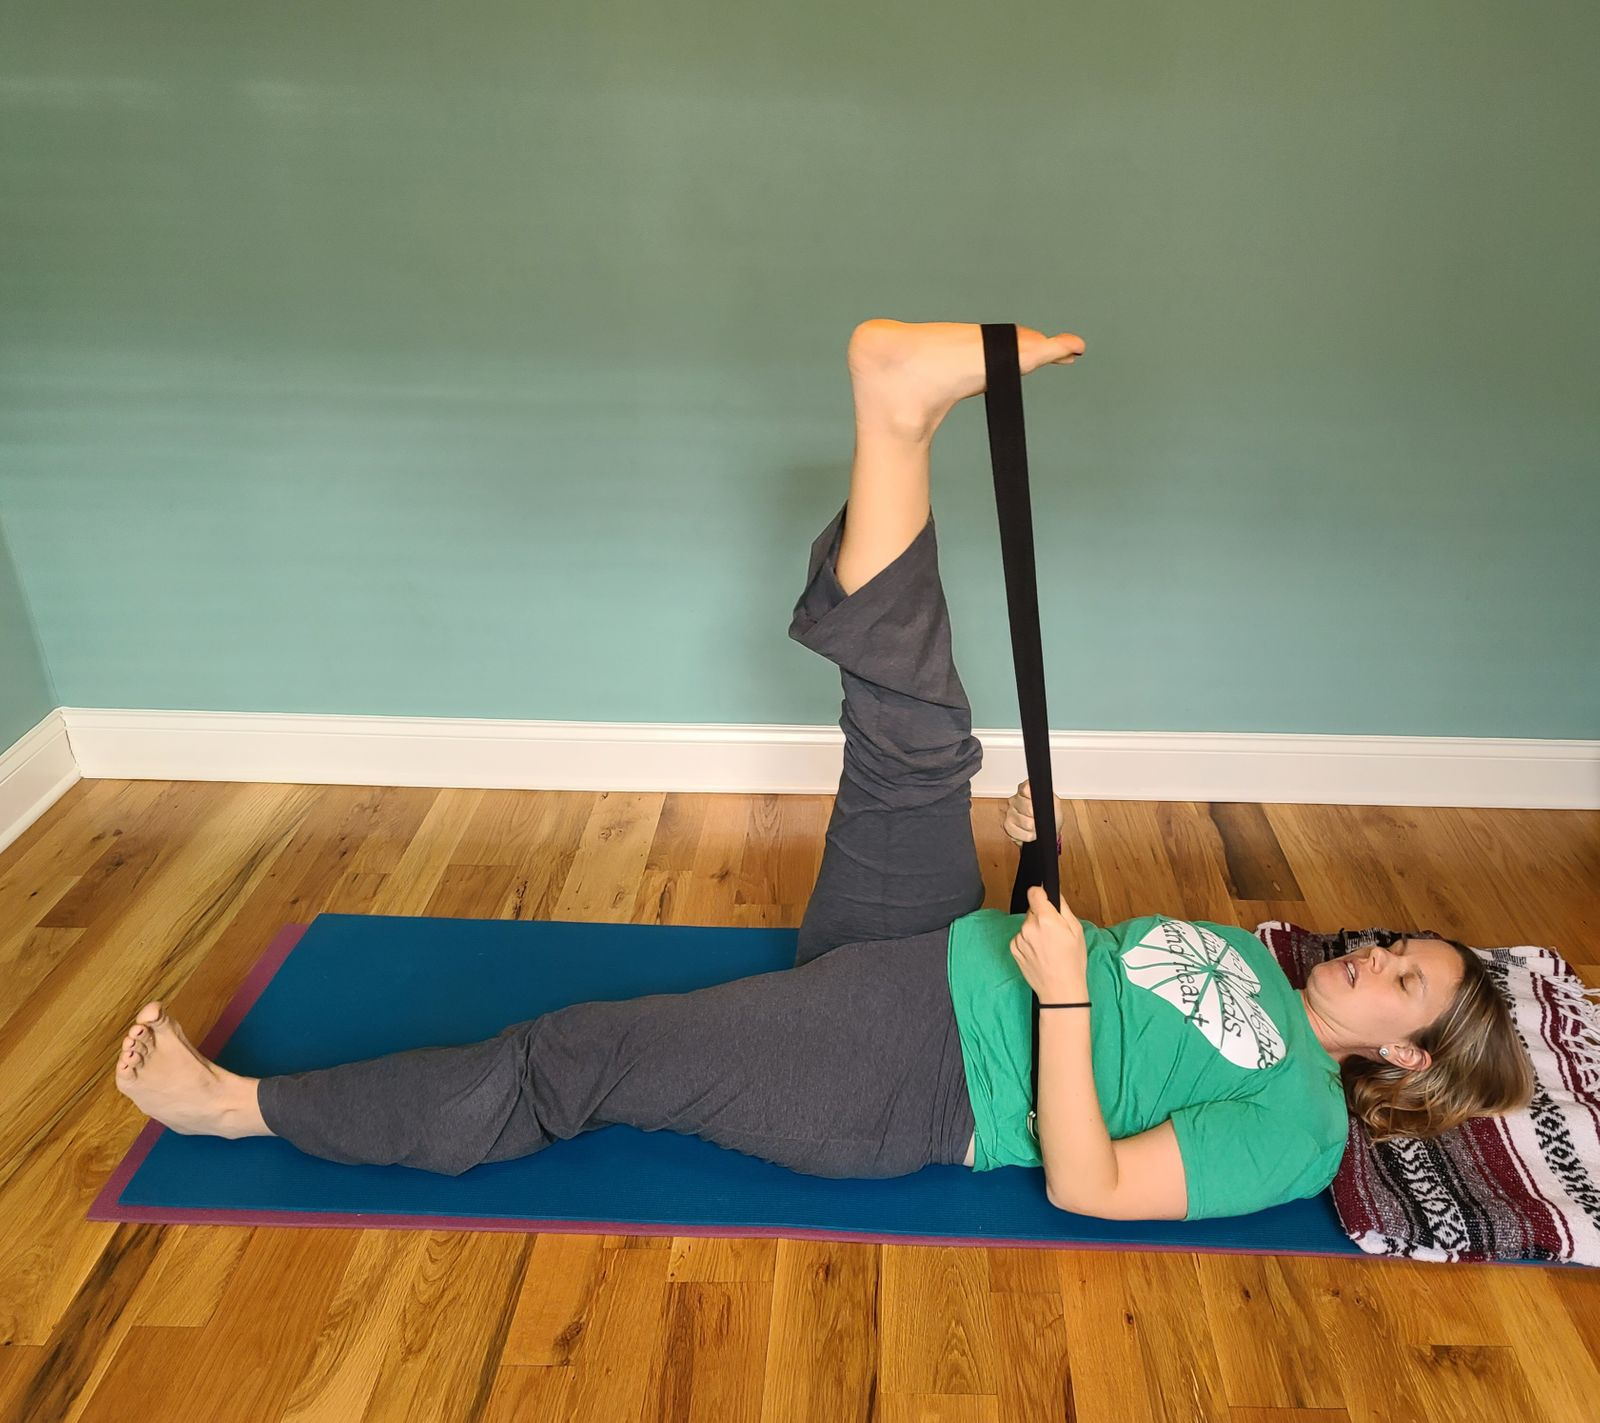 Hamstring- extending your reach